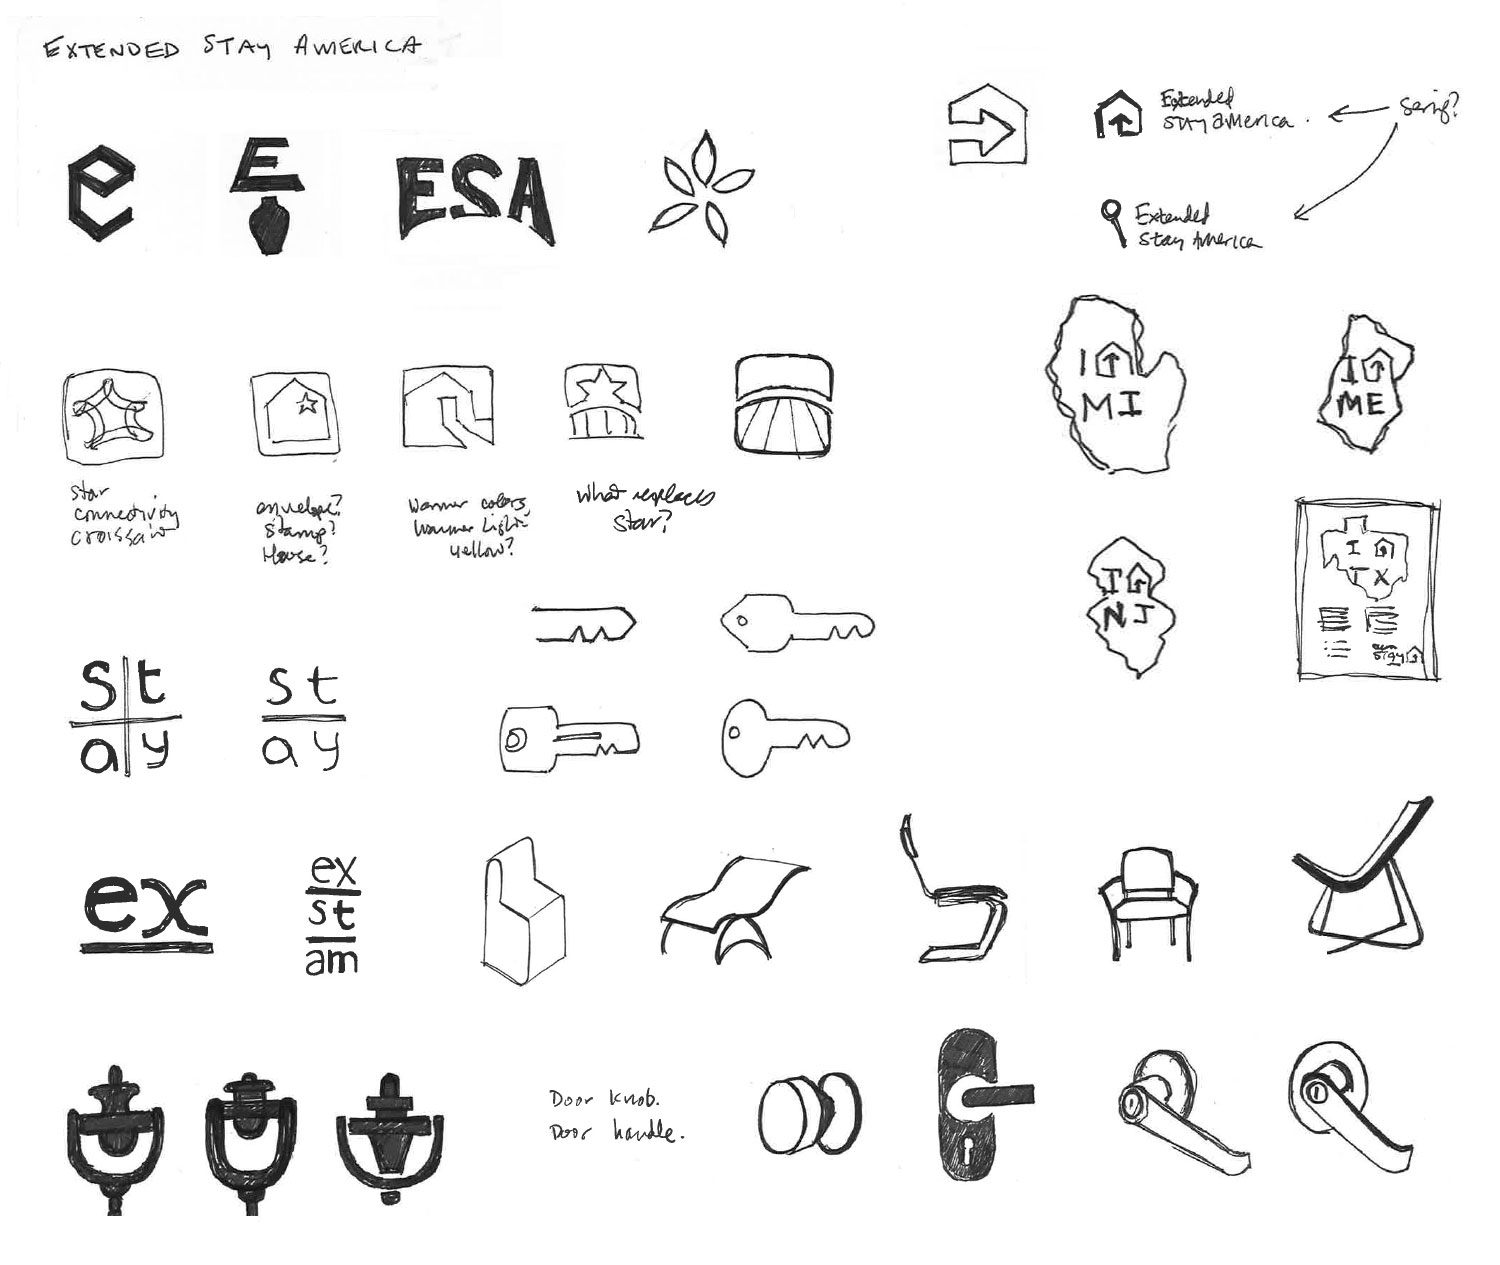 Extended Stay America logo sketches